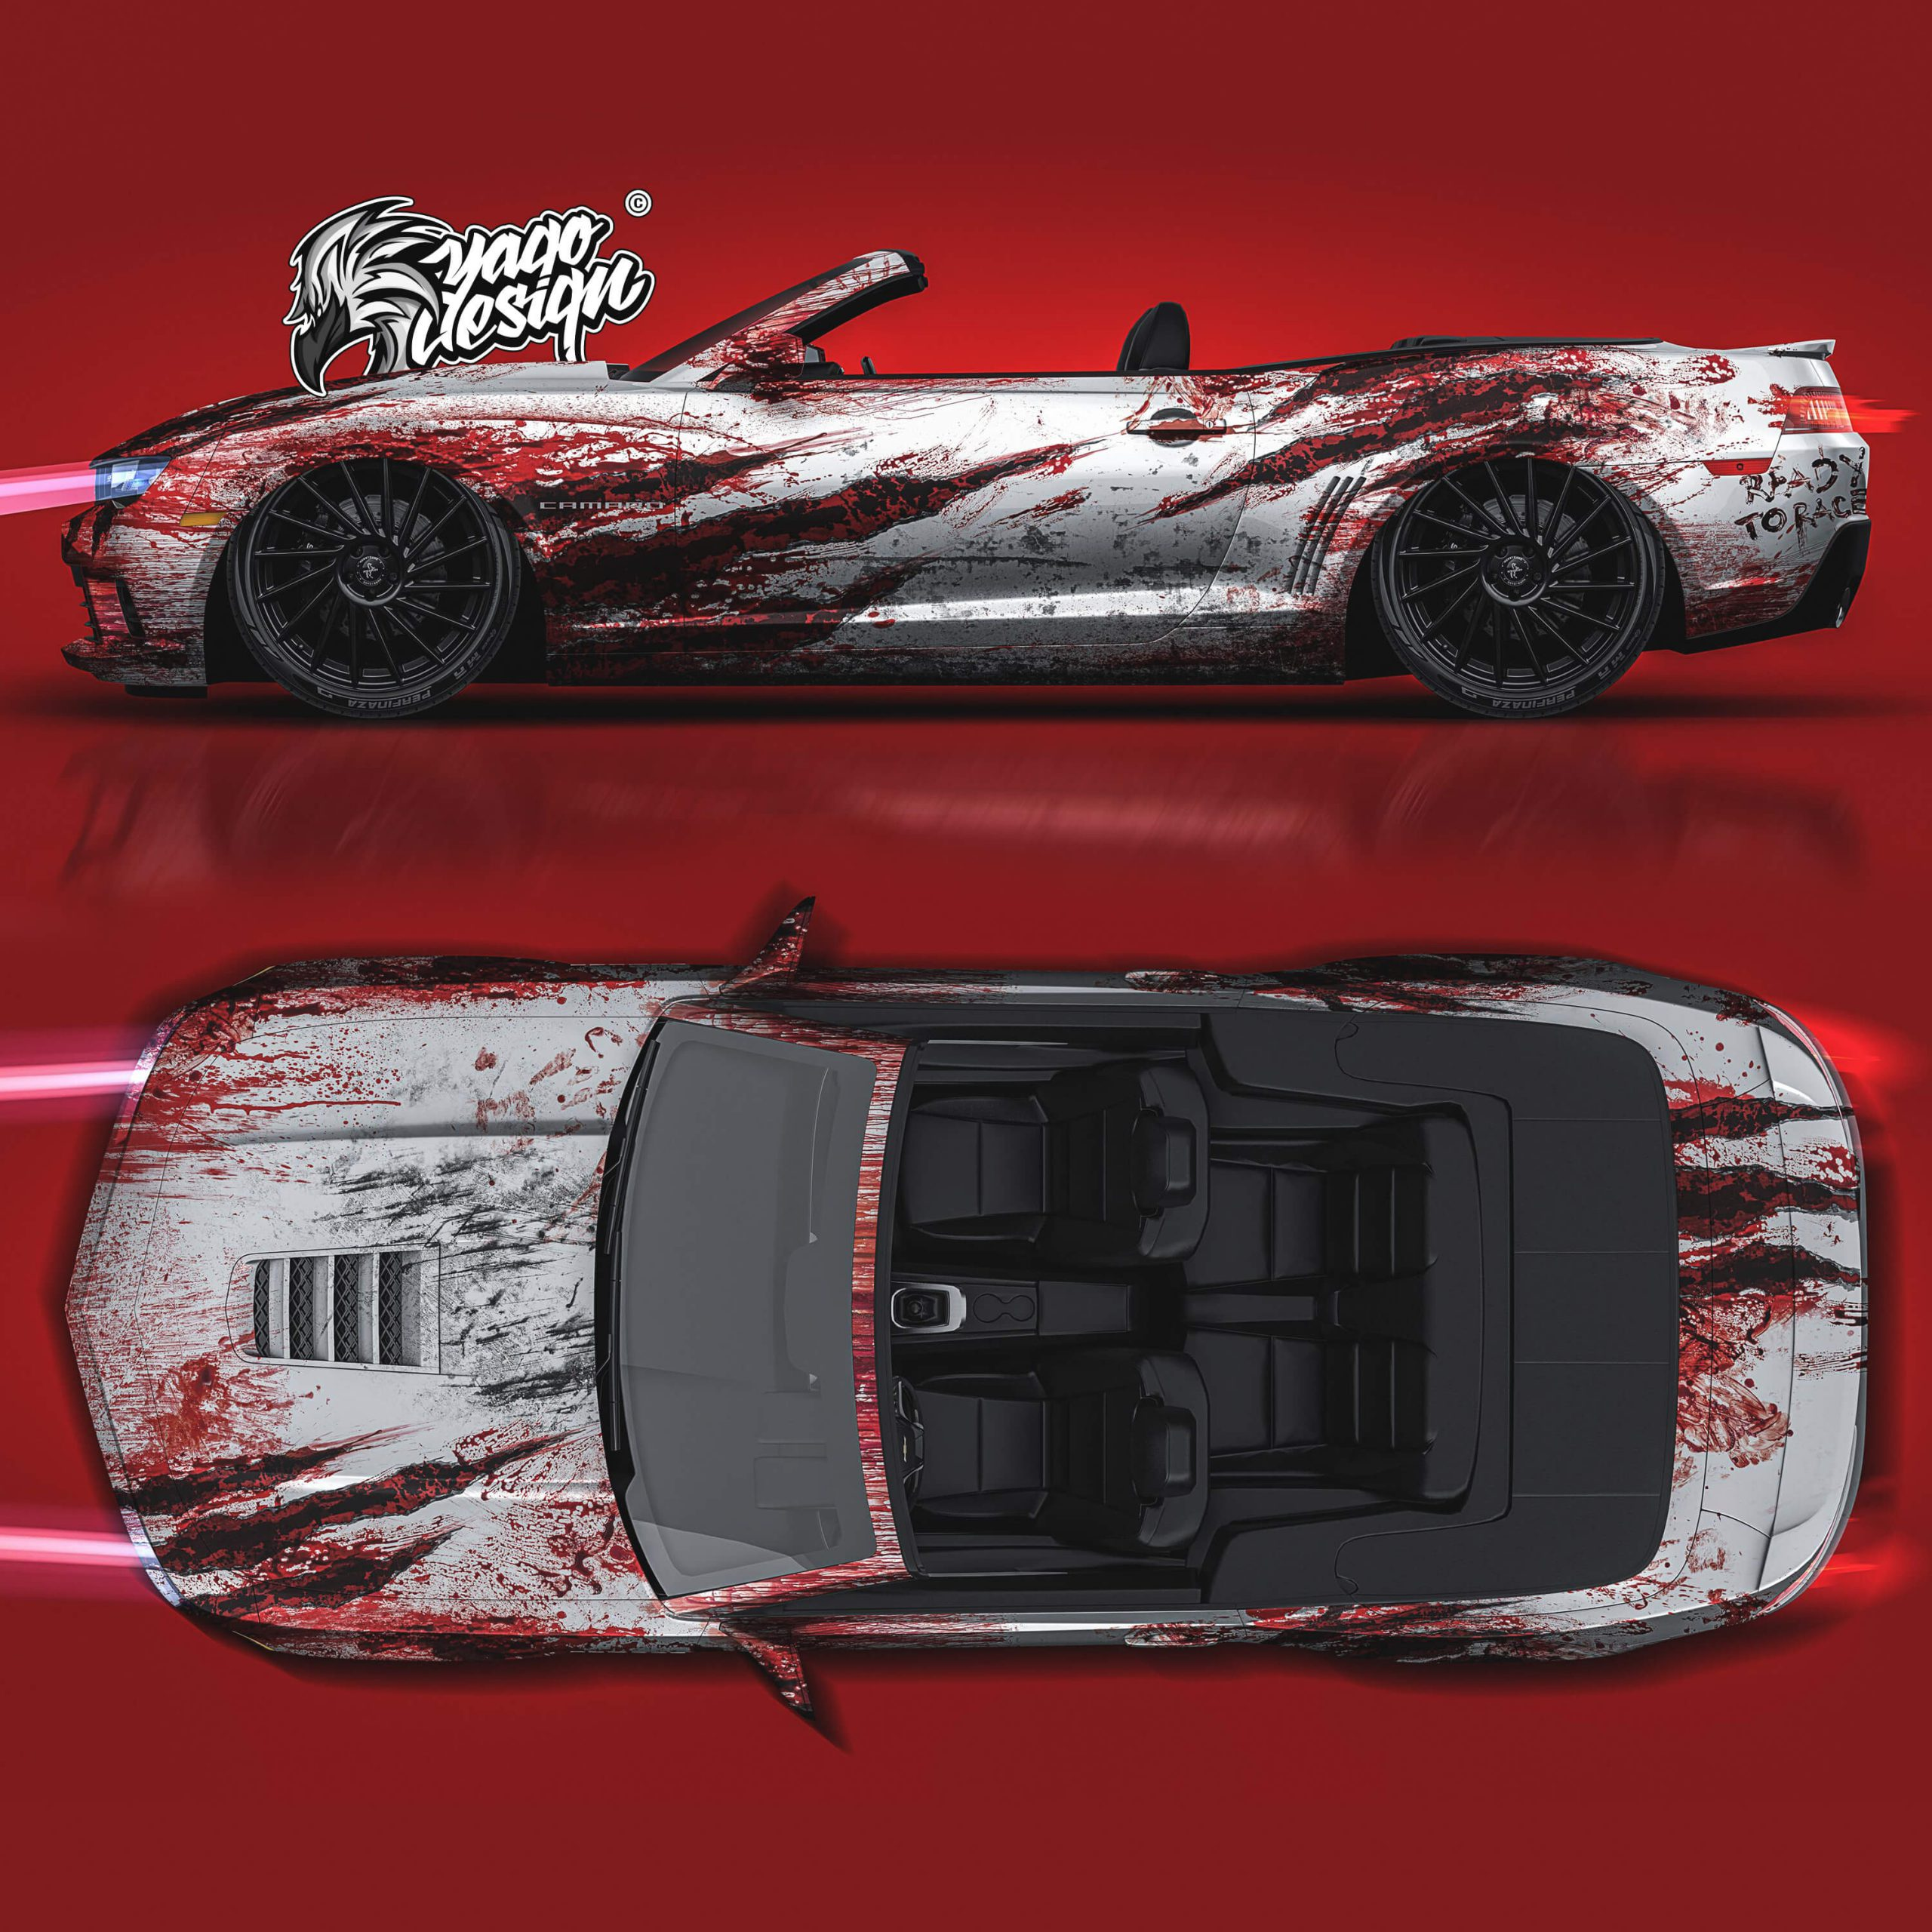 Chevrolet-Camaro-SS-Convertible-2014-by-Yagodesign-bloody-scaled